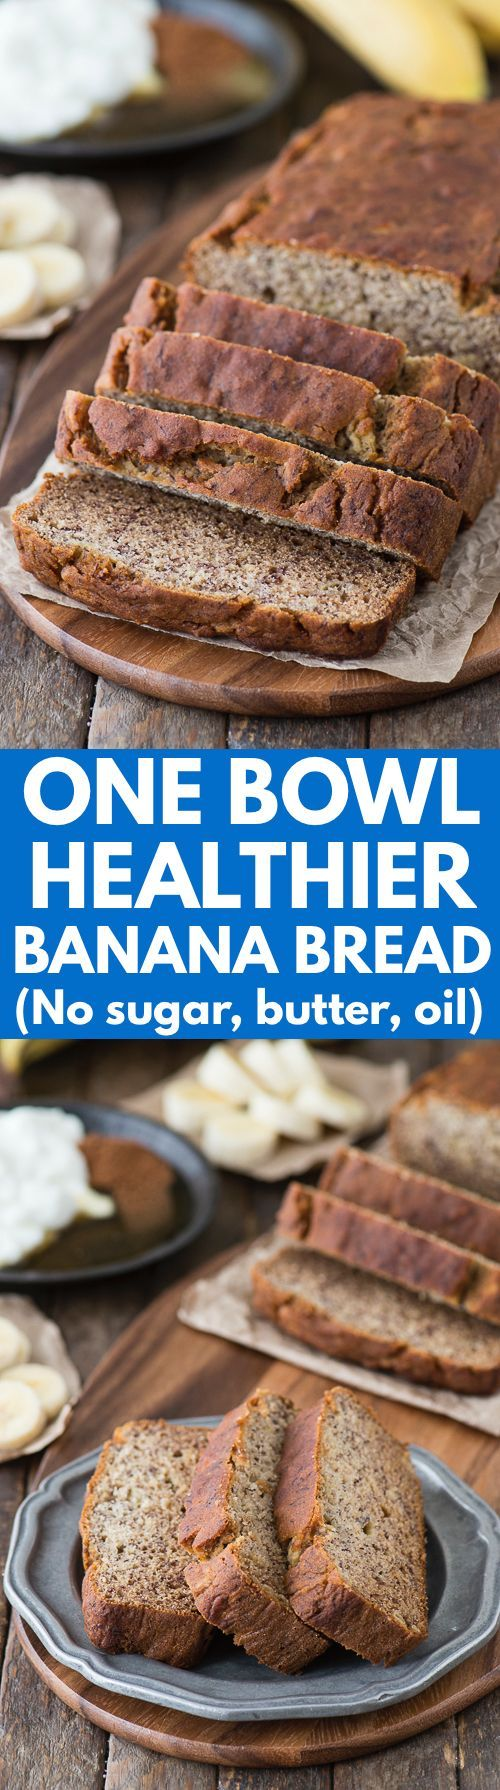 One bowl healthier banana bread recipe with no sugar, butter, or oil!